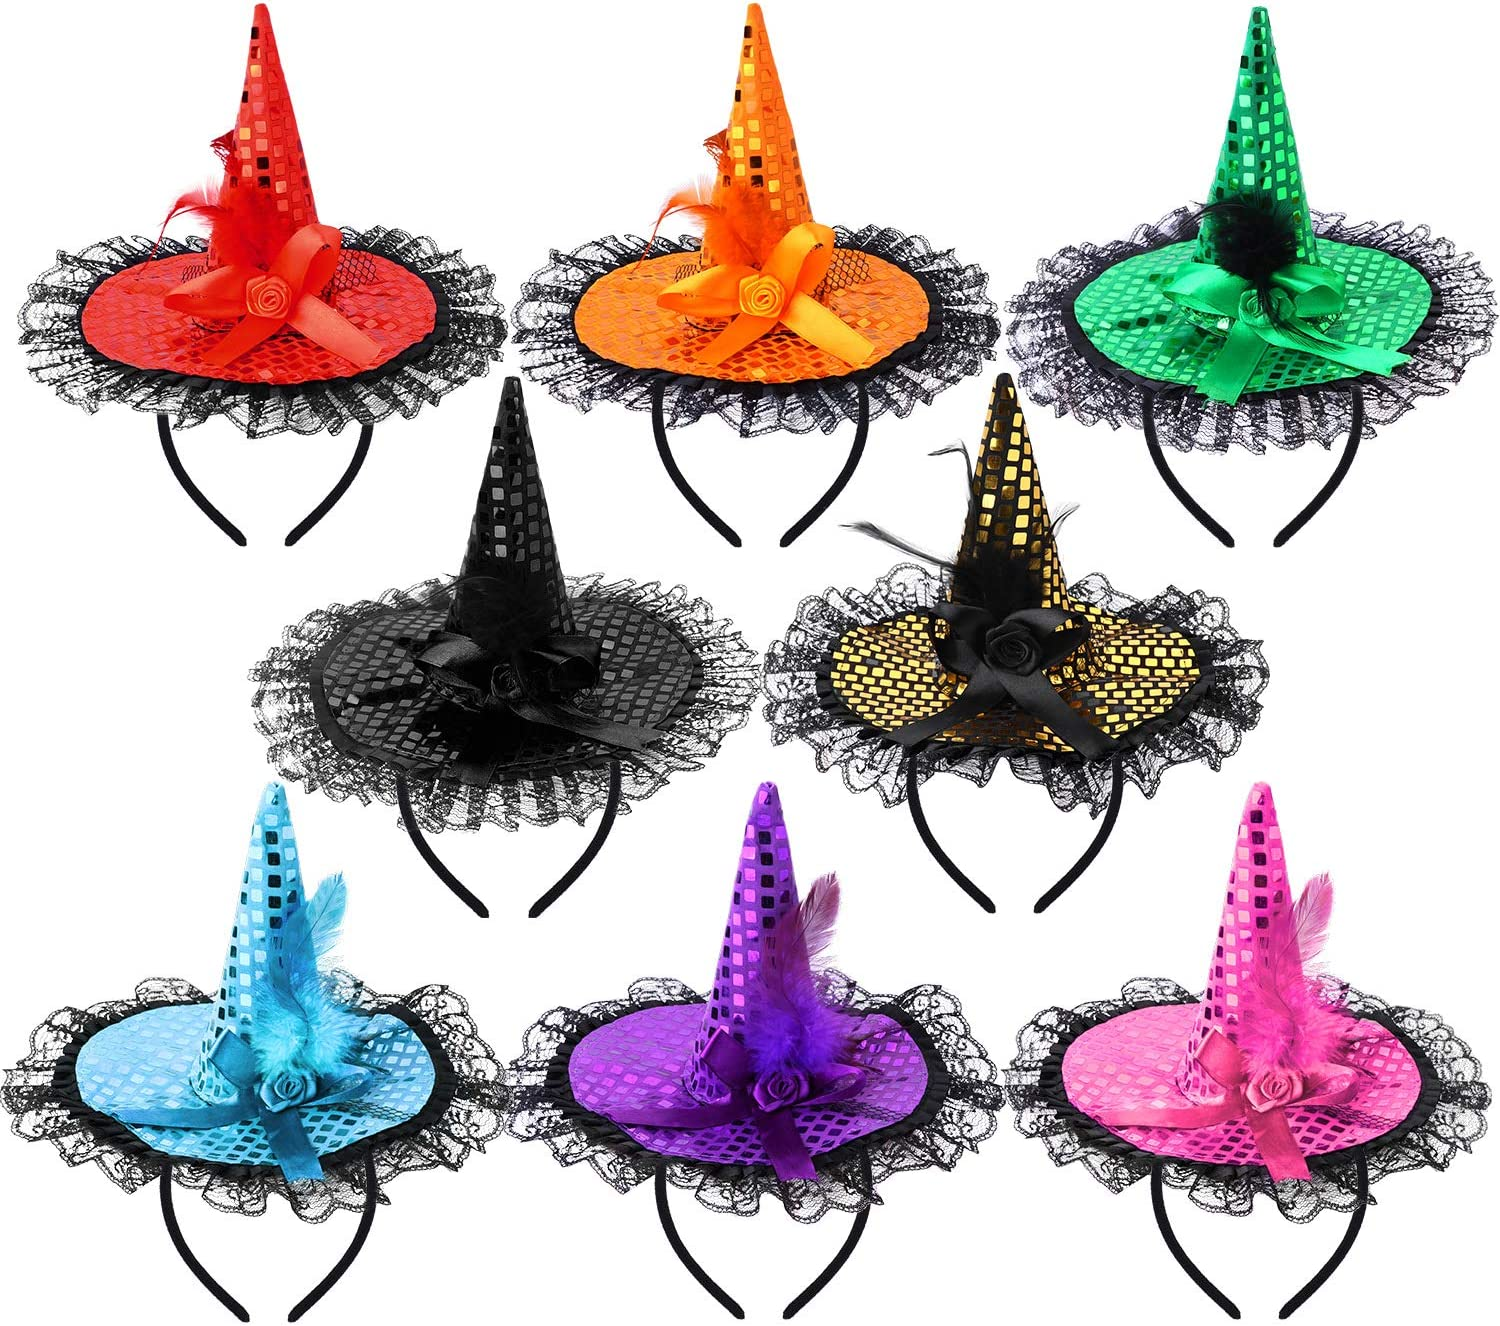 ADXCO 8 Colors Halloween Sequins Witch Hat Headbands Halloween Costume Headwear for Halloween Party Supplies: Toys & Games